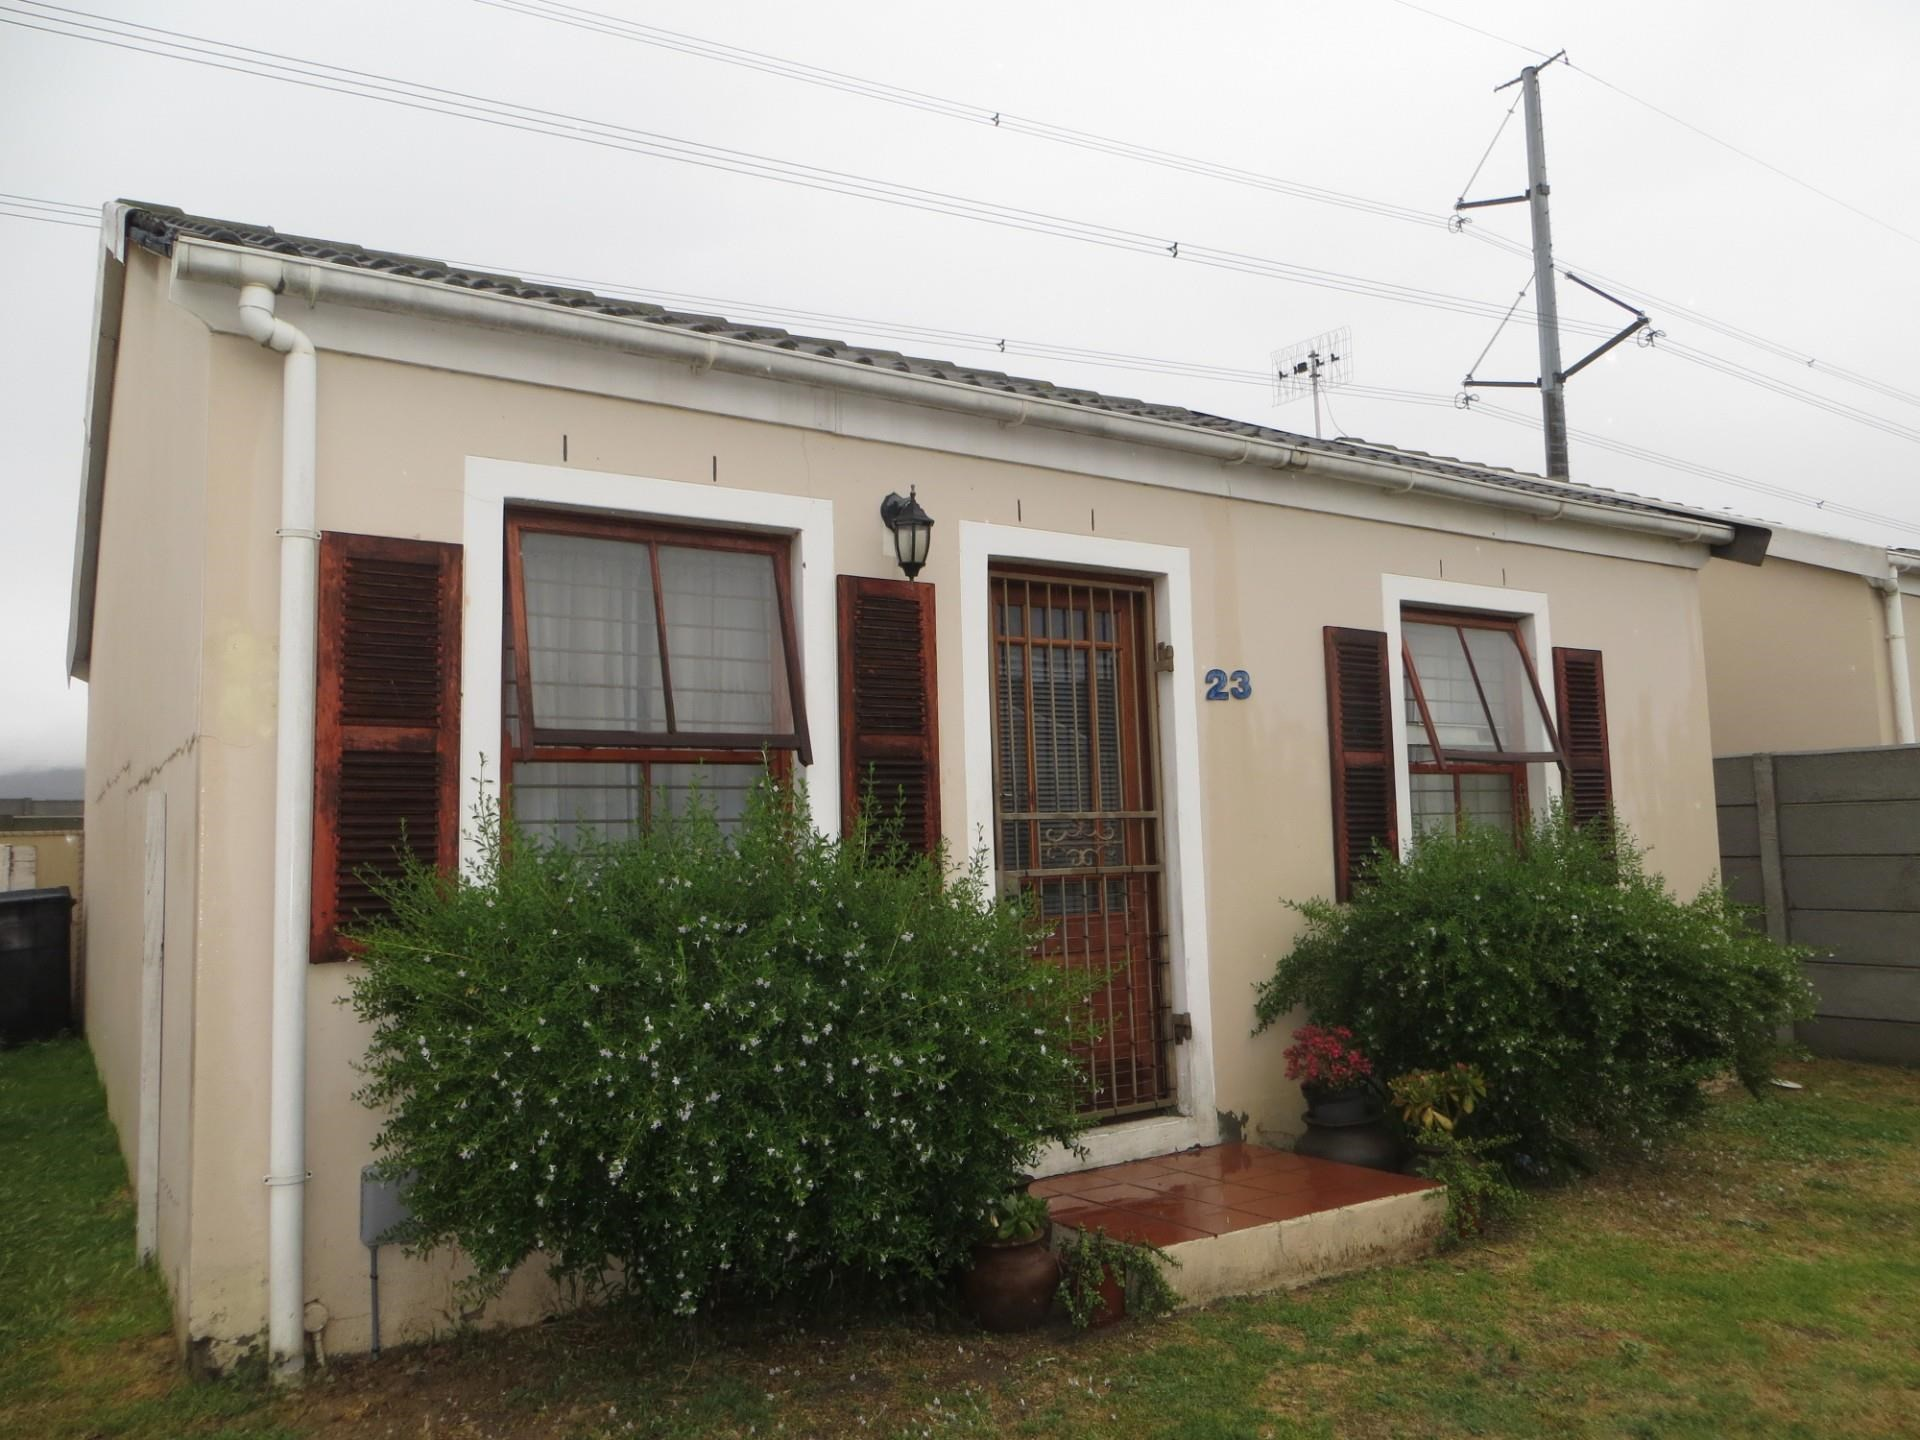 2 Bedroom House for Sale in Guldenland